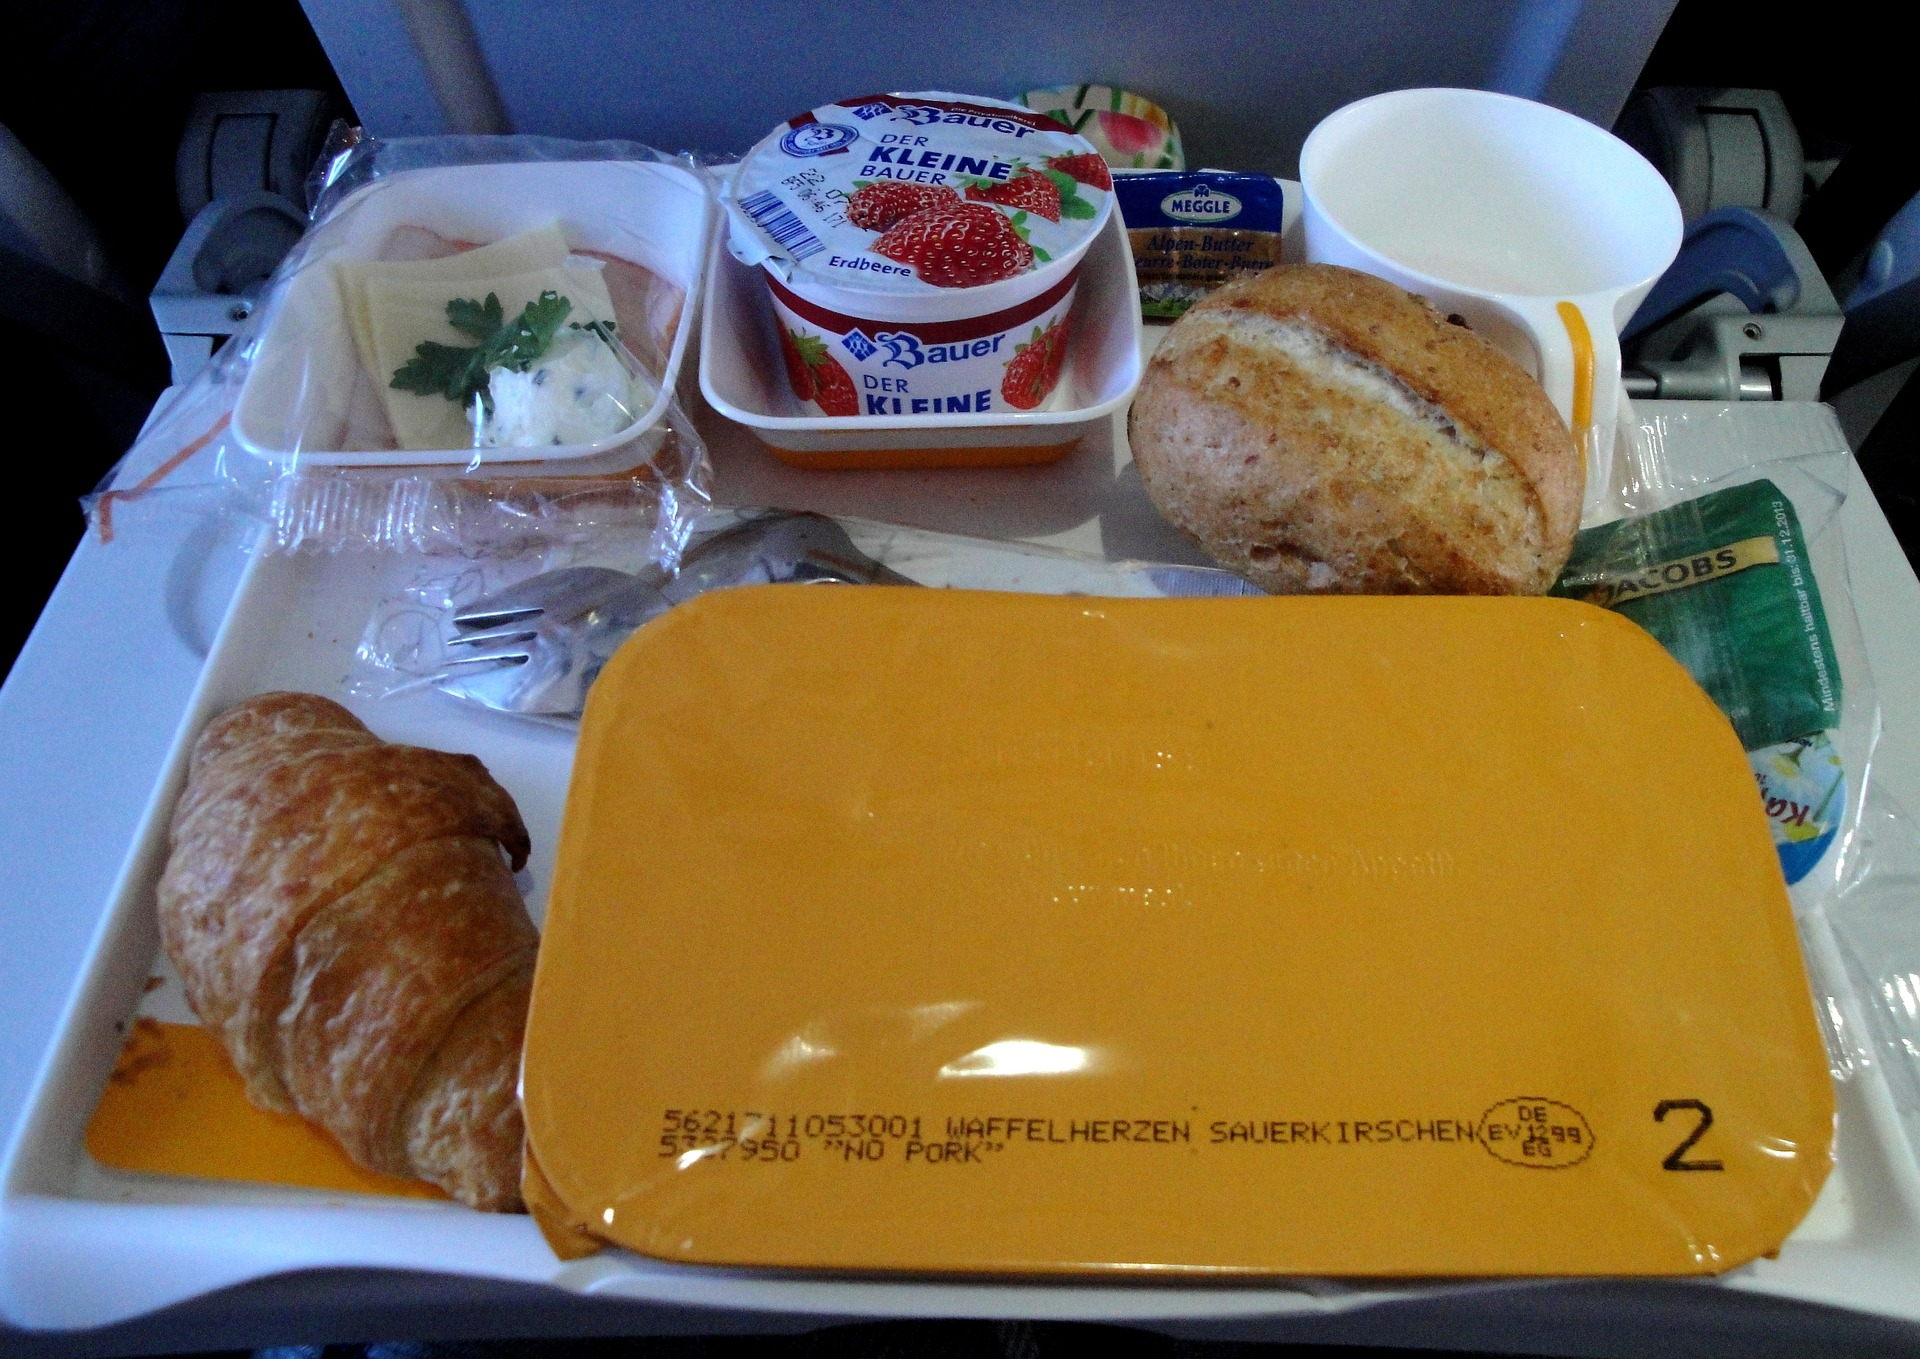 Typical Plane Food on Phoe Travels Travel Hacks